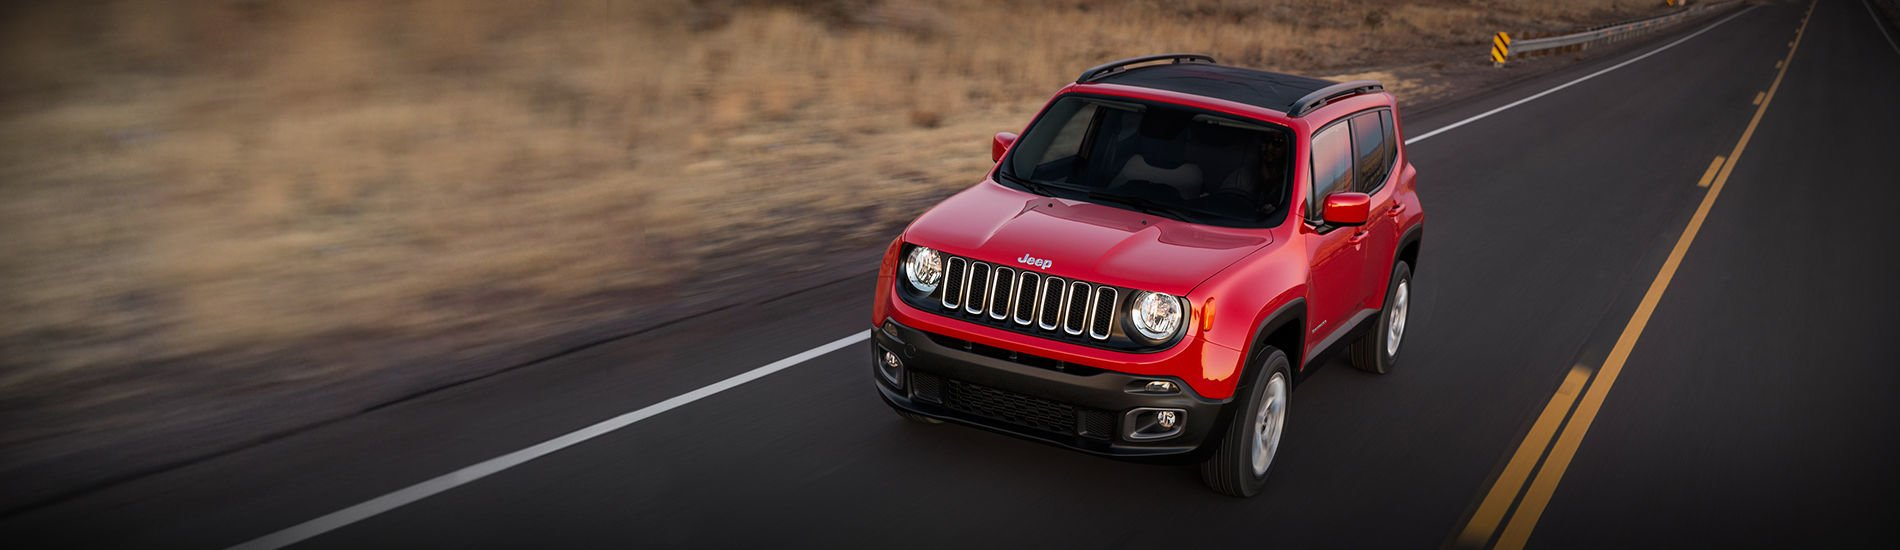 Jeep Renegade Lease Deals Offers Aurora Il Mopar Off Road Fog Driving Lights Wiring Kit Compass Patriot New For Sale North